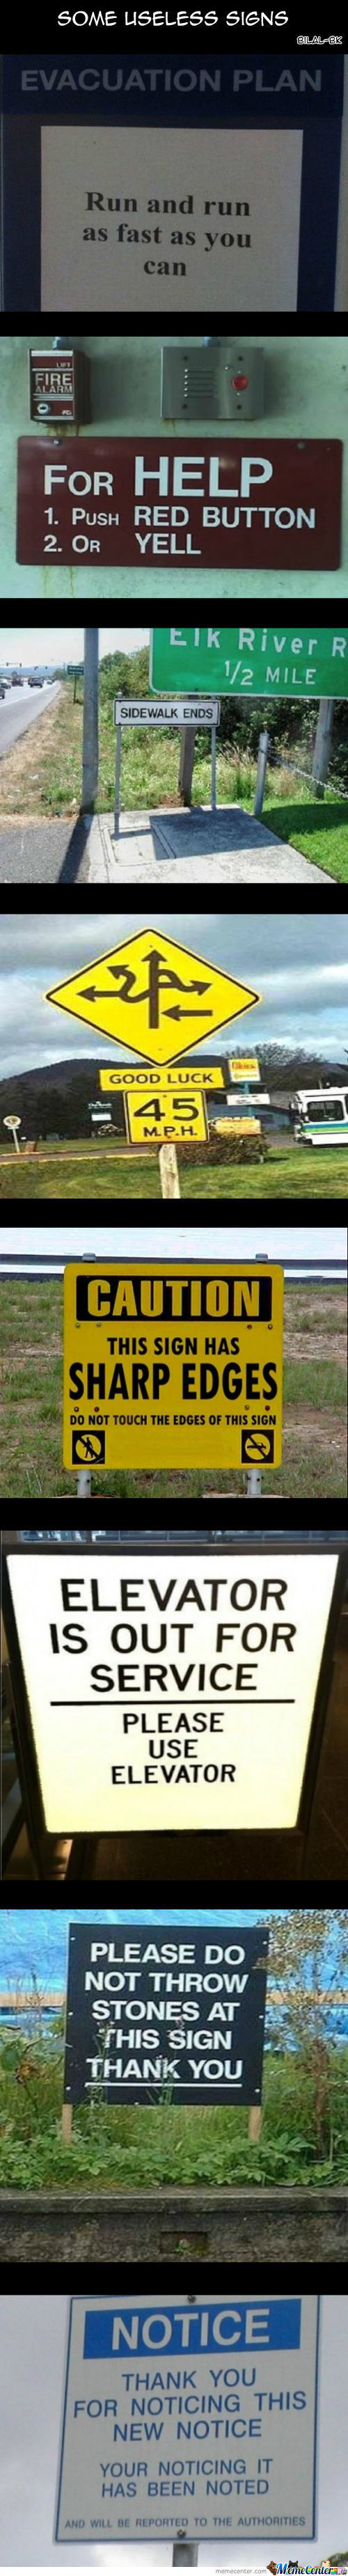 Some Useless Signs